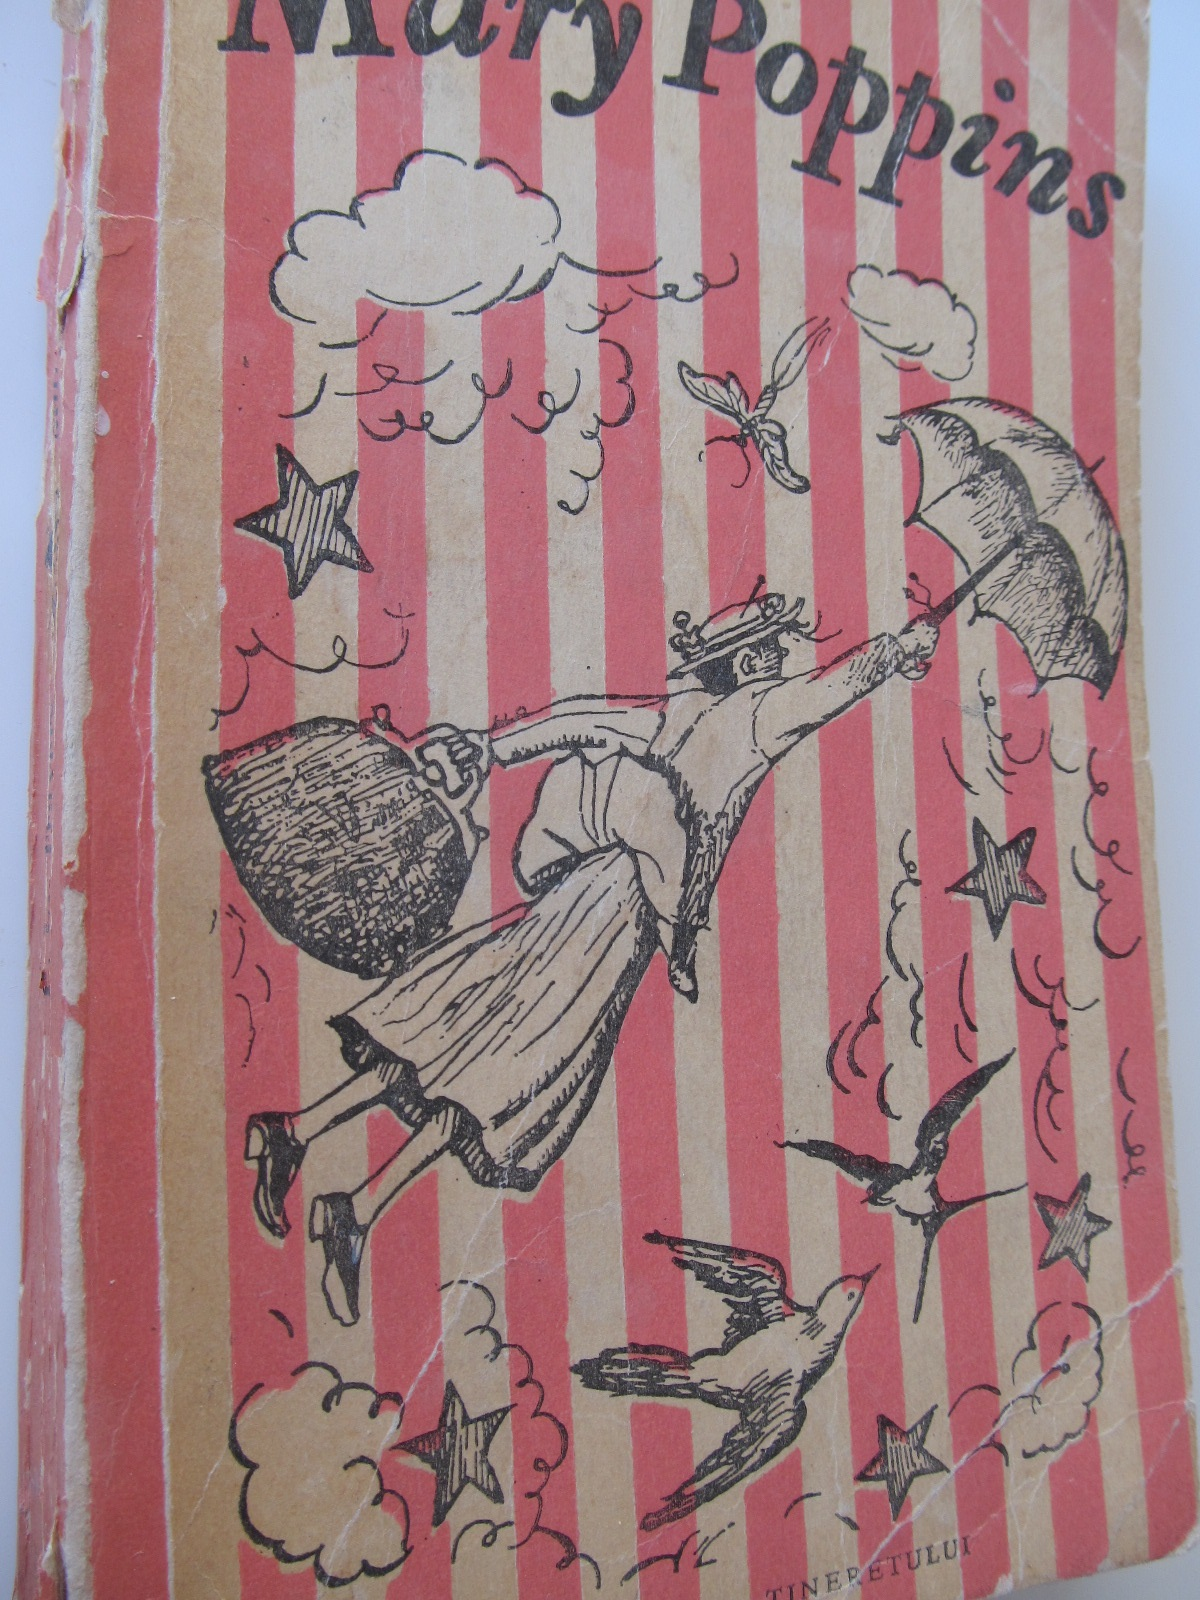 Carte Mary Poppins - P. L. Travers